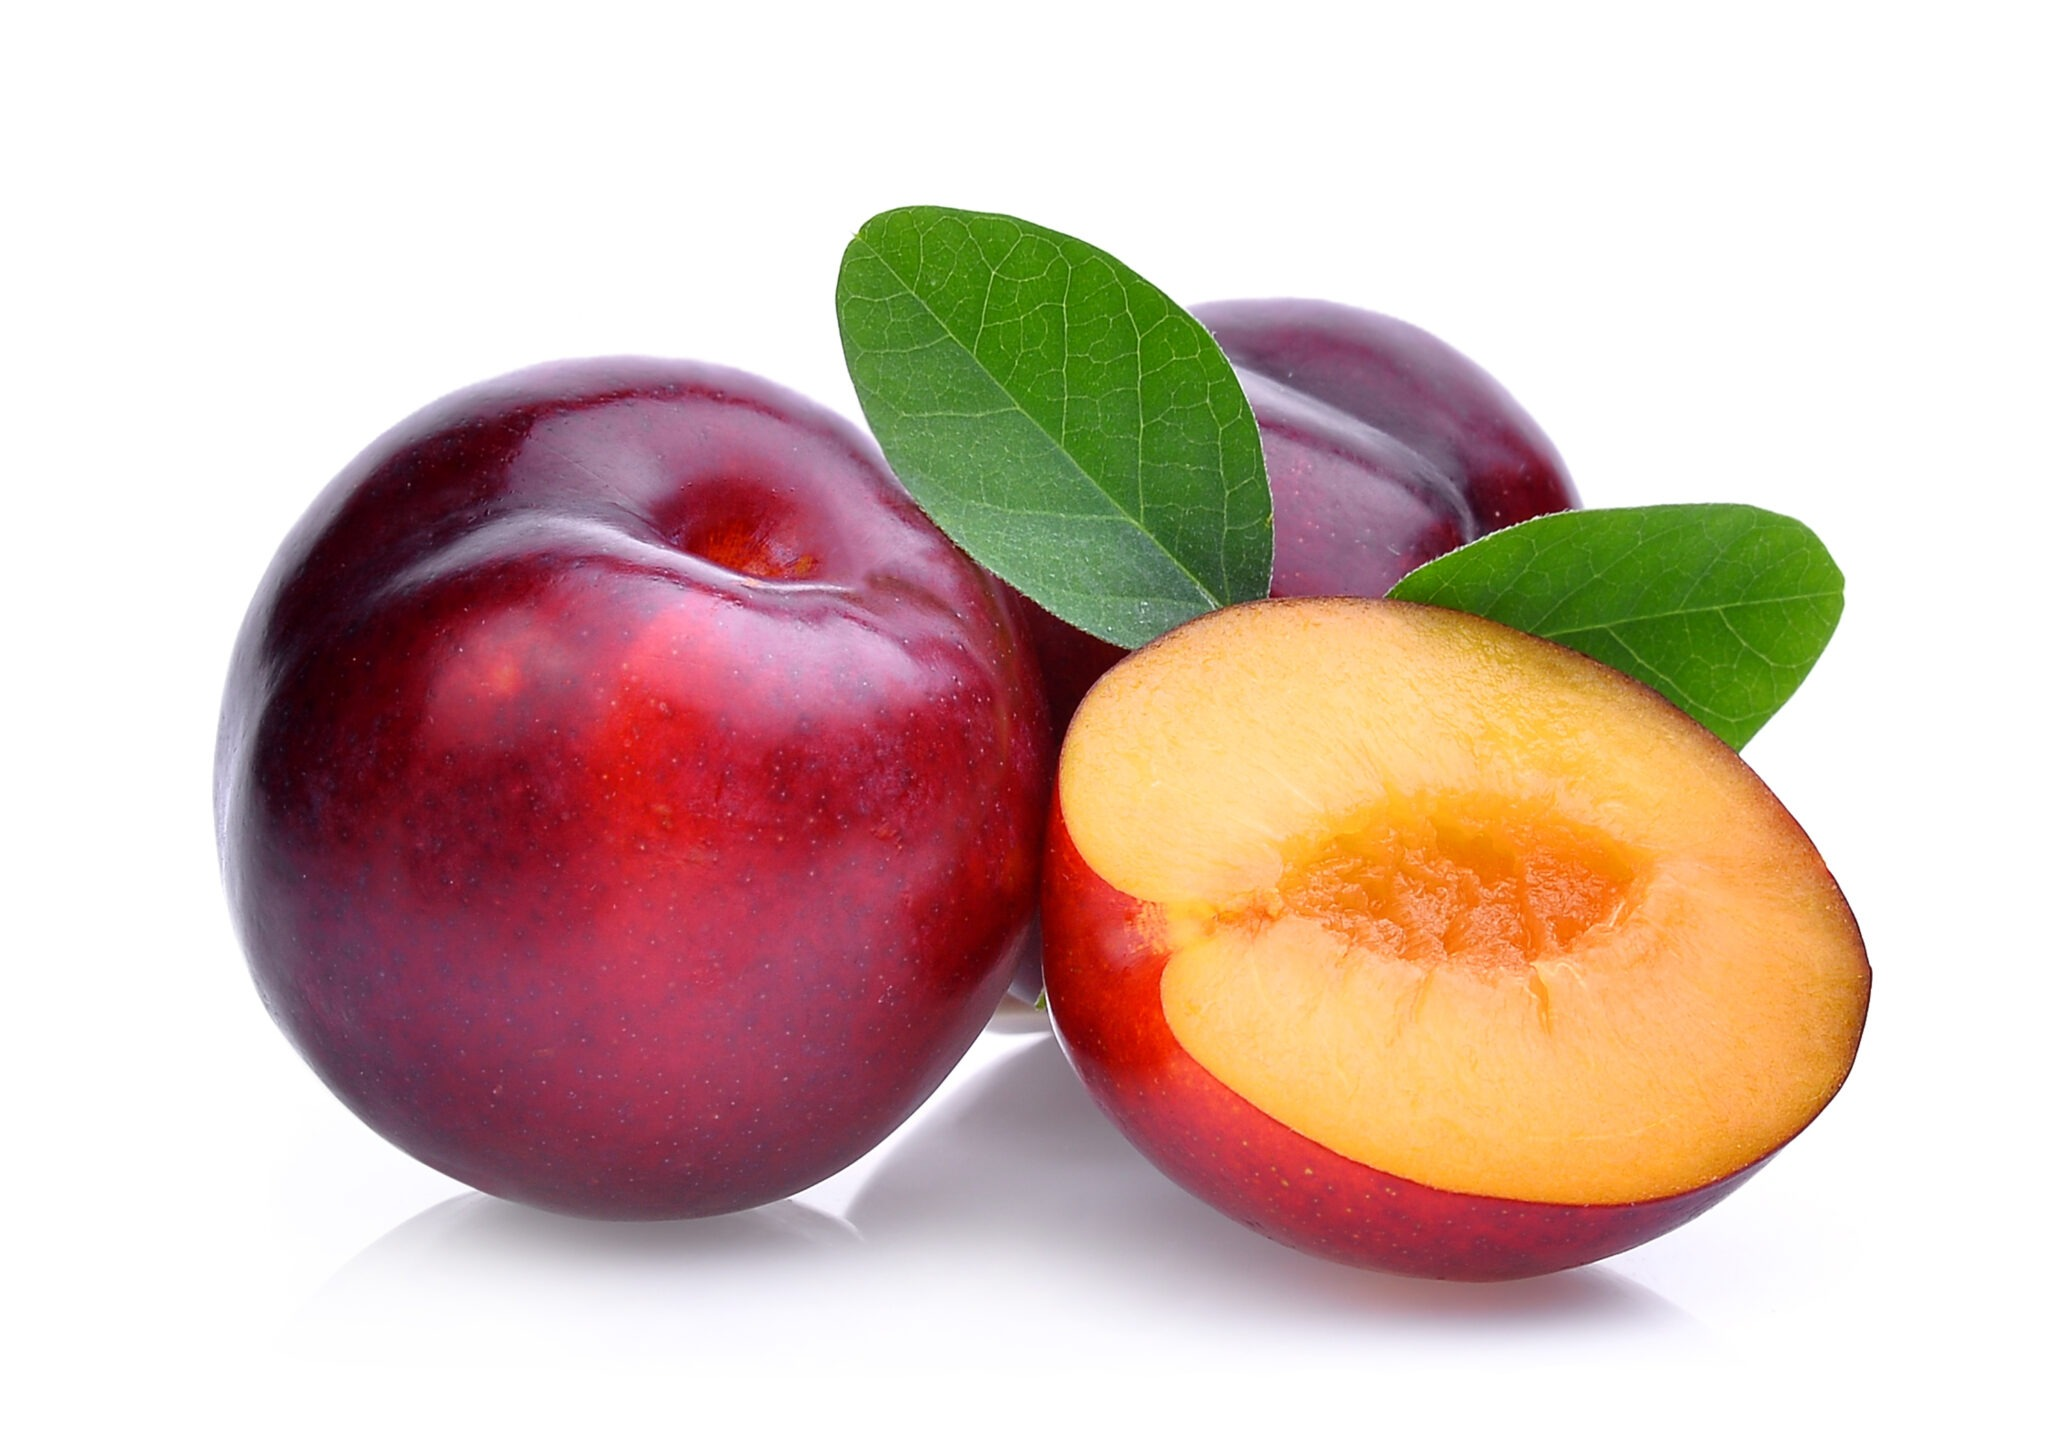 Plum benefits for health